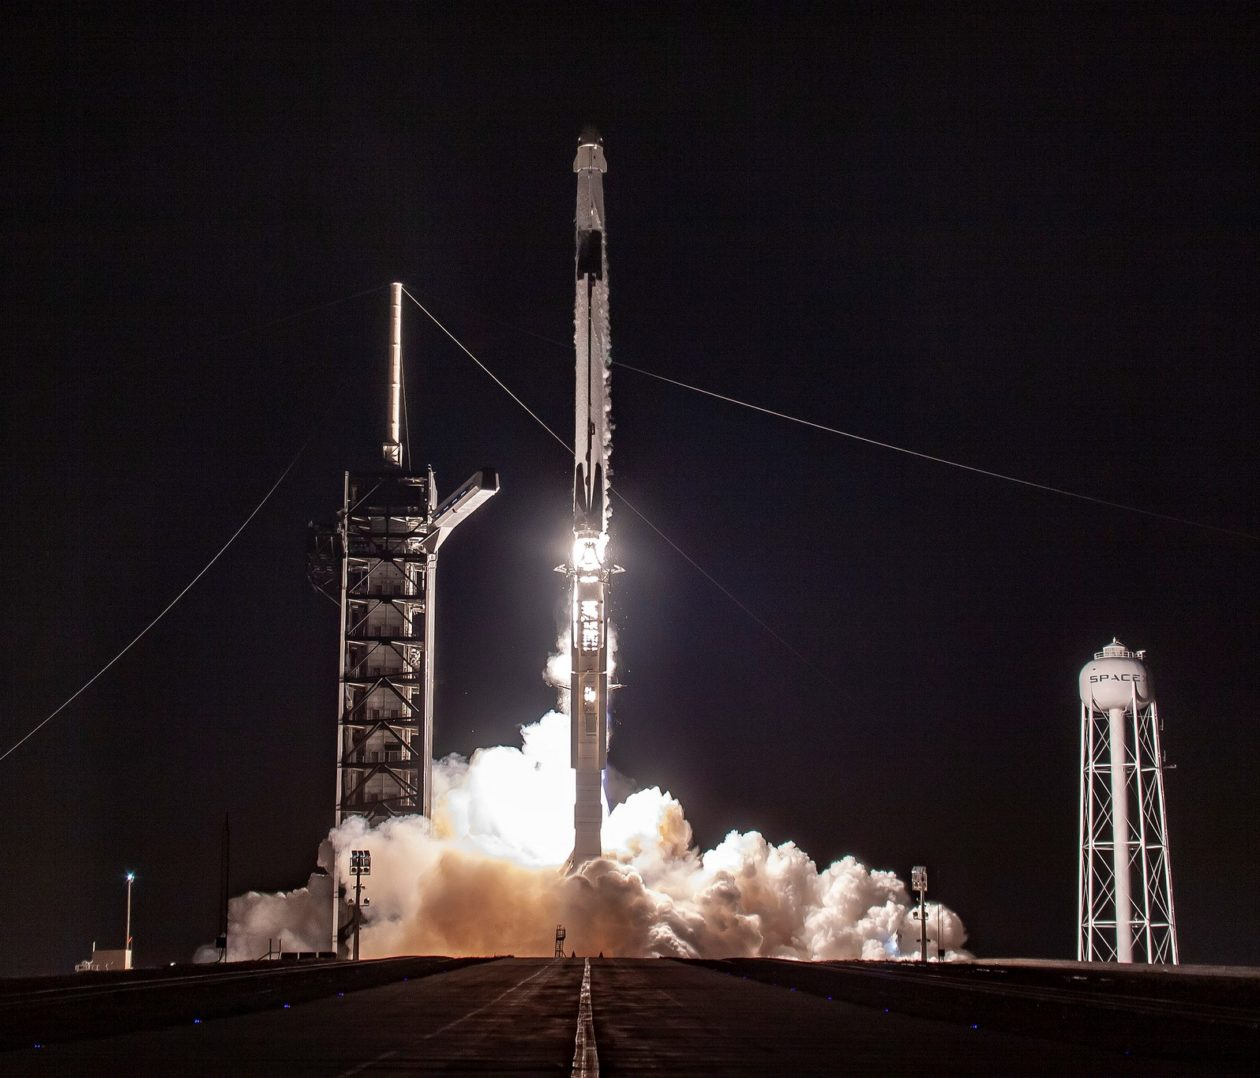 Spacex S Crew Dragon Spaceship Makes Maiden Flight With